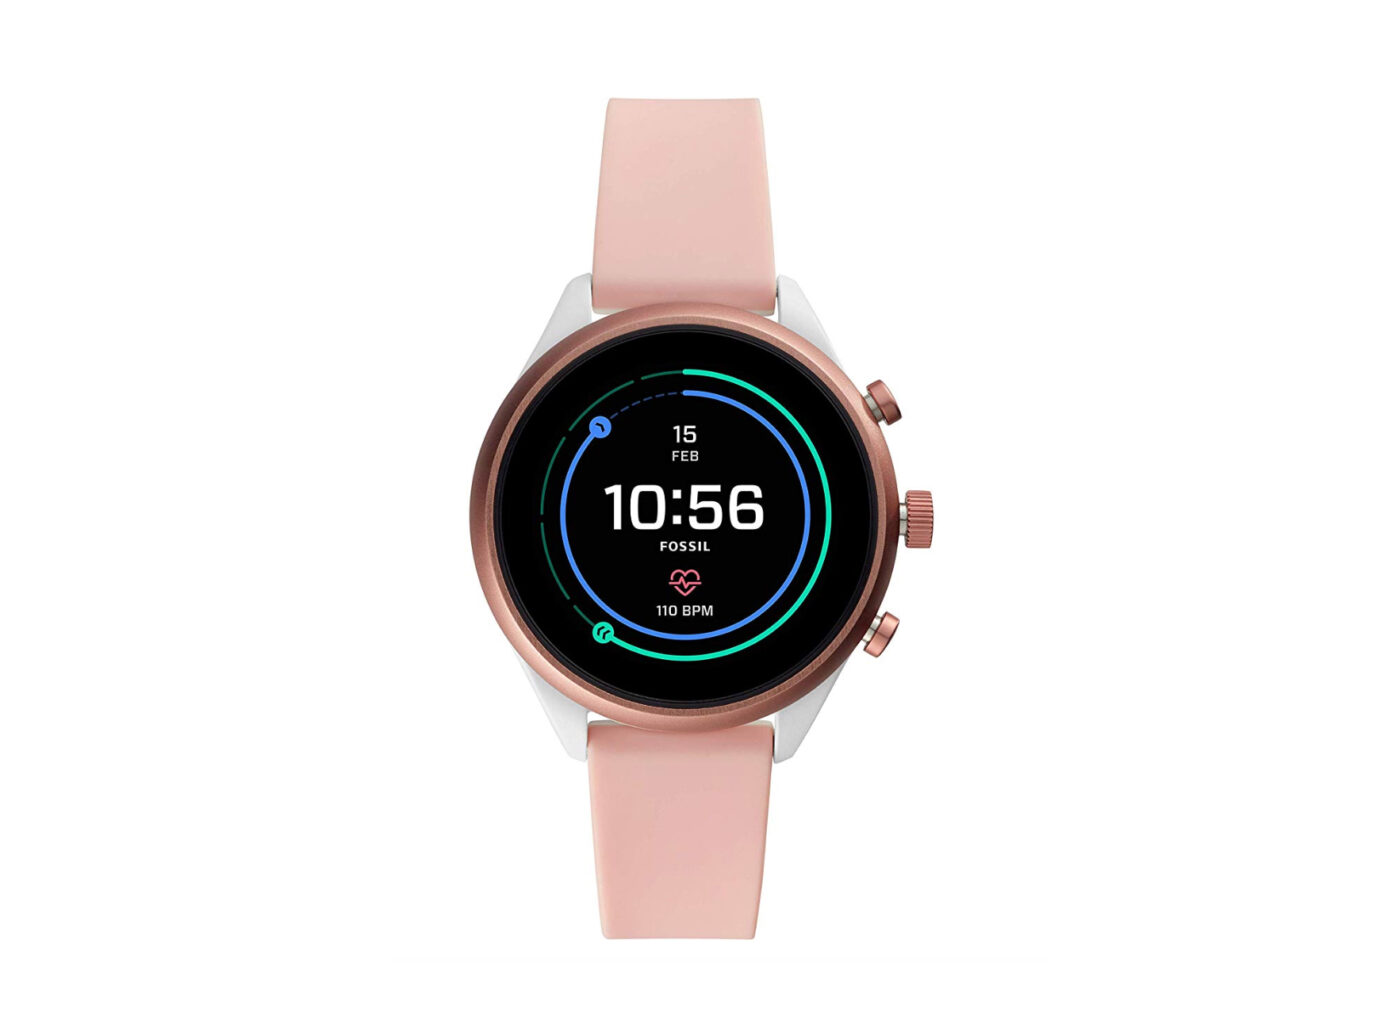 Fossil Women's Sport Touchscreen Smartwatch